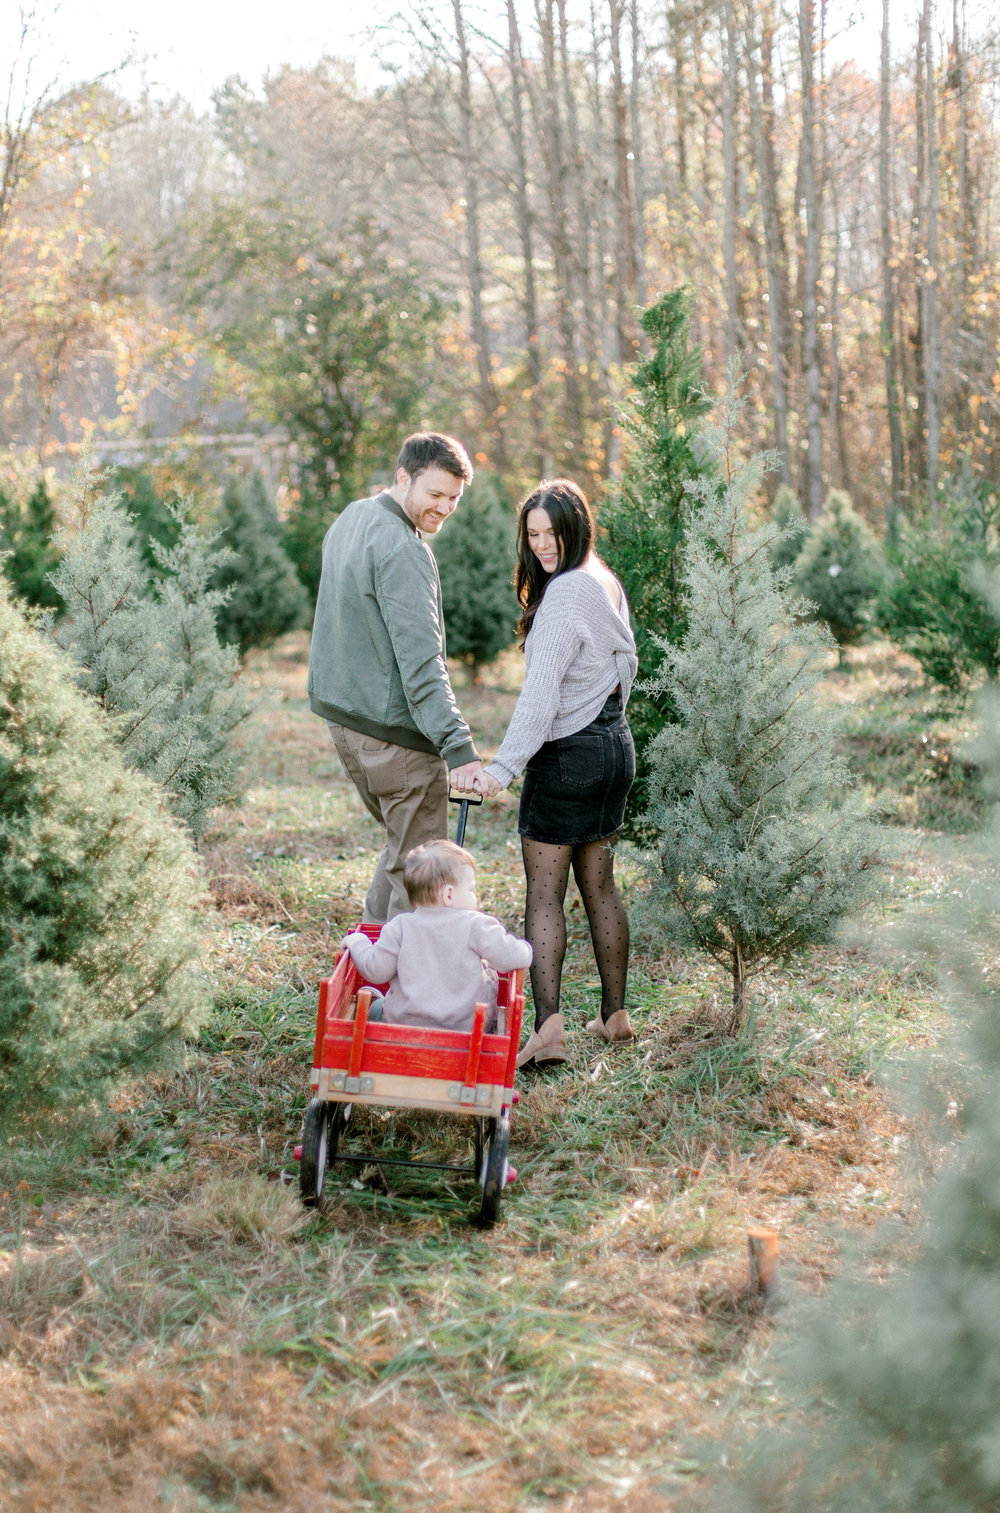 Jessica Sgubin Photography Atlanta Photographer Atlanta Portrait Photographer Atlanta engagement photographer atlanta family photographer atlanta baby photograpehr-14.jpg